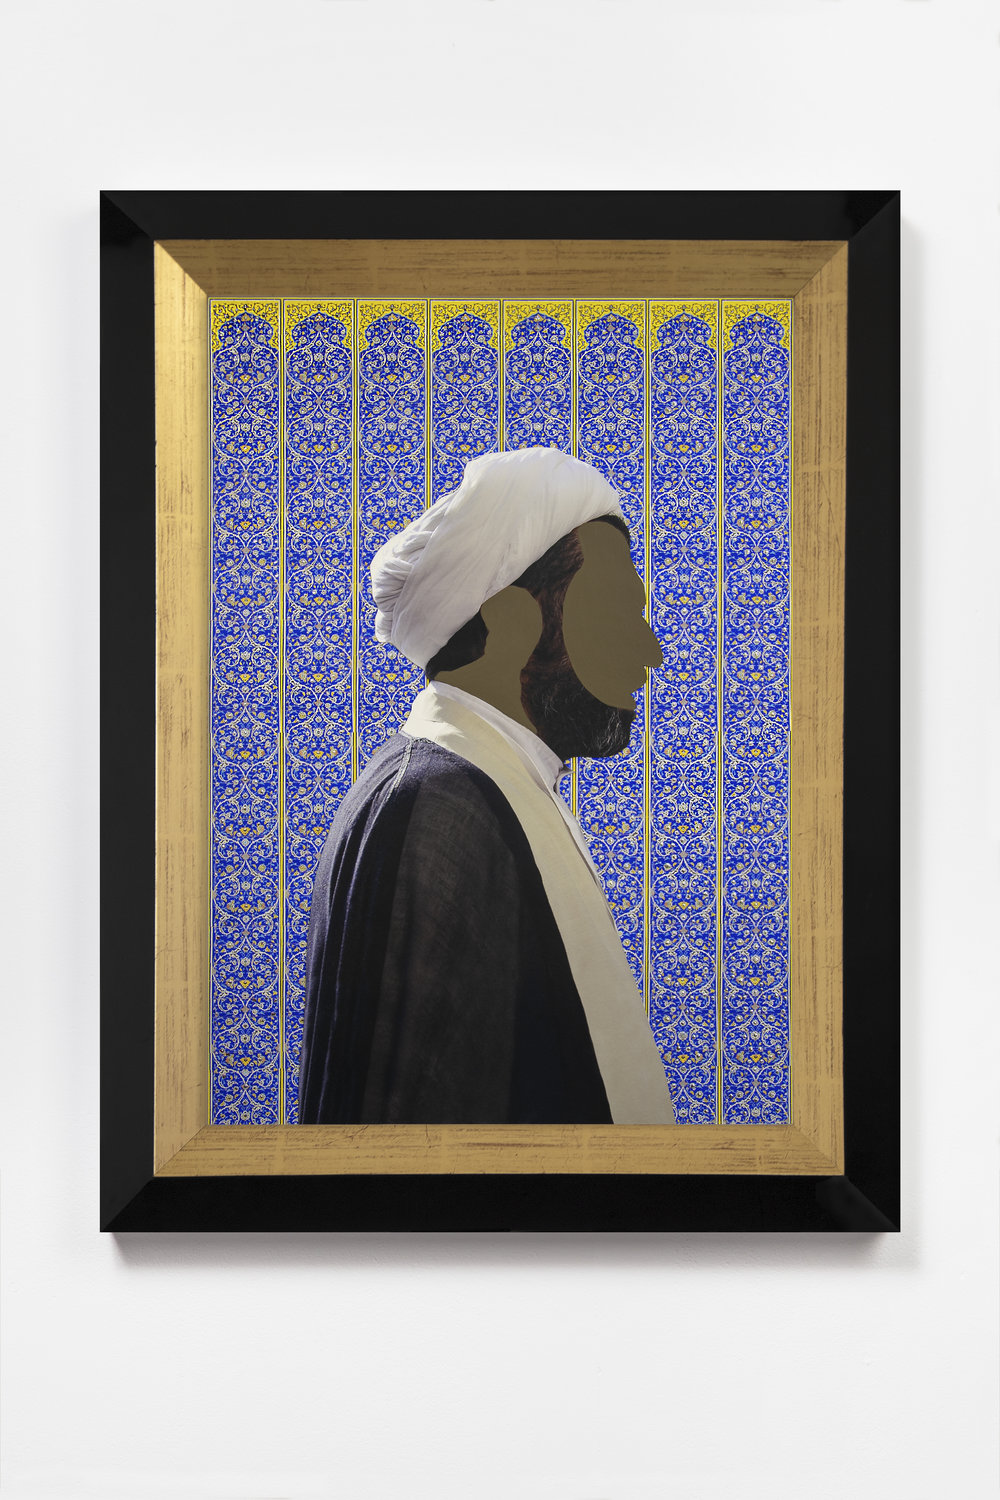 Portraits Framed Final_Ali Shomali.jpg